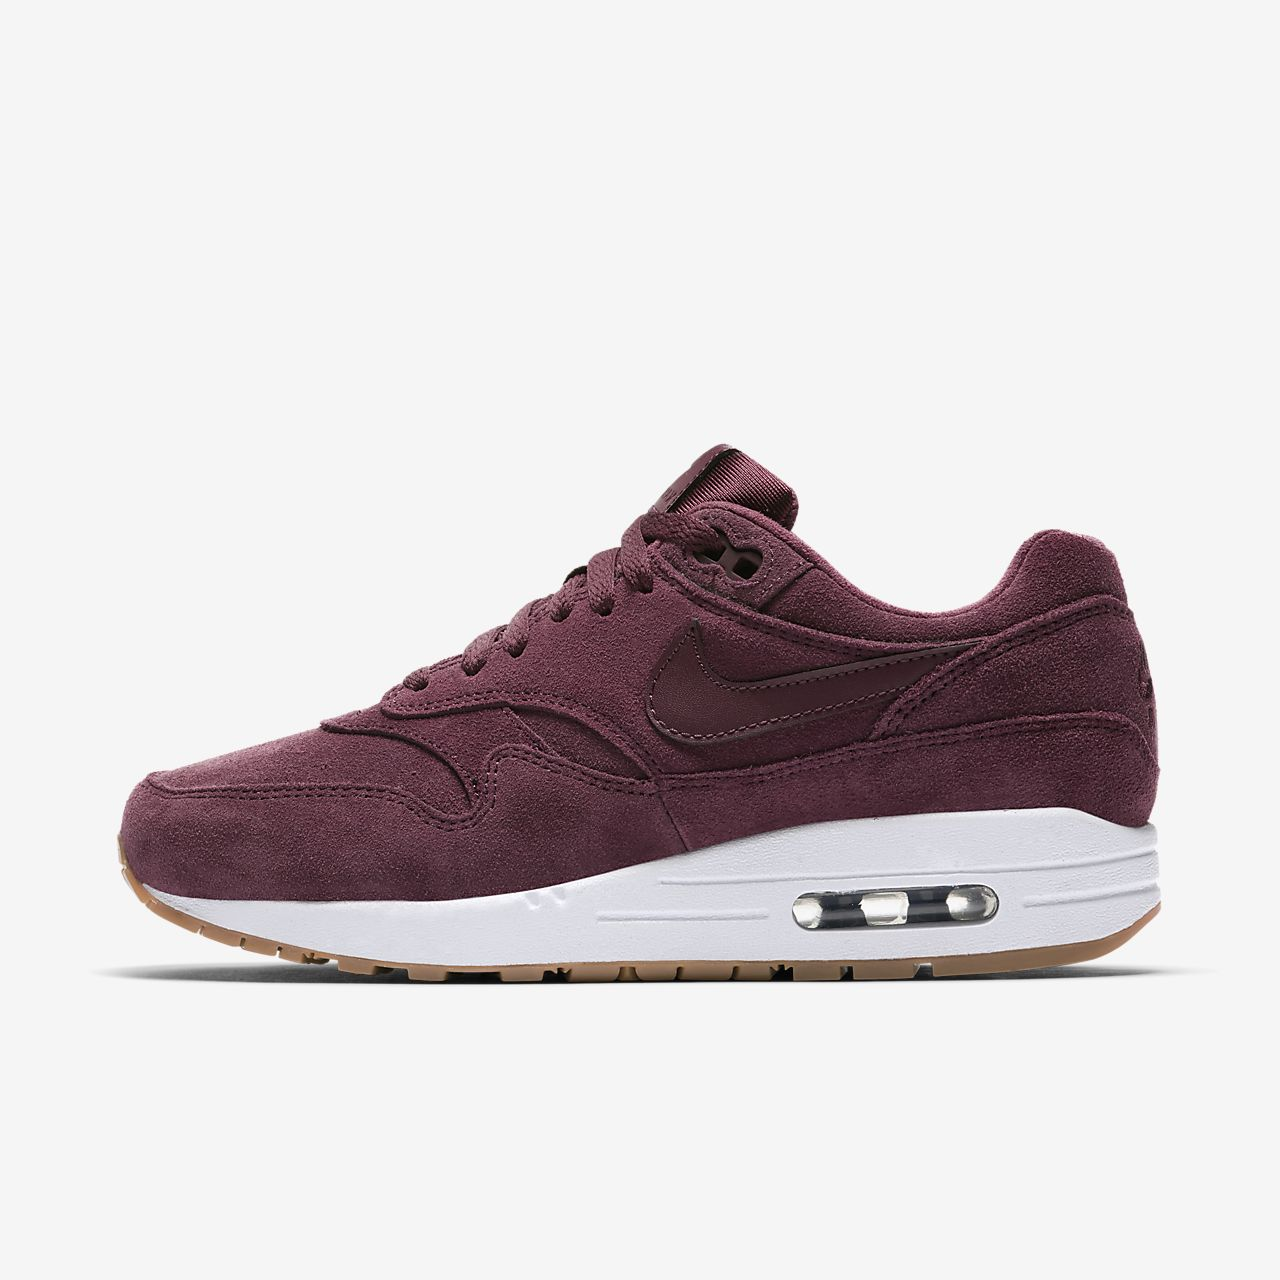 01b3b41503a080 Nike Air Max 1 SE Women s Shoe. Nike.com GB